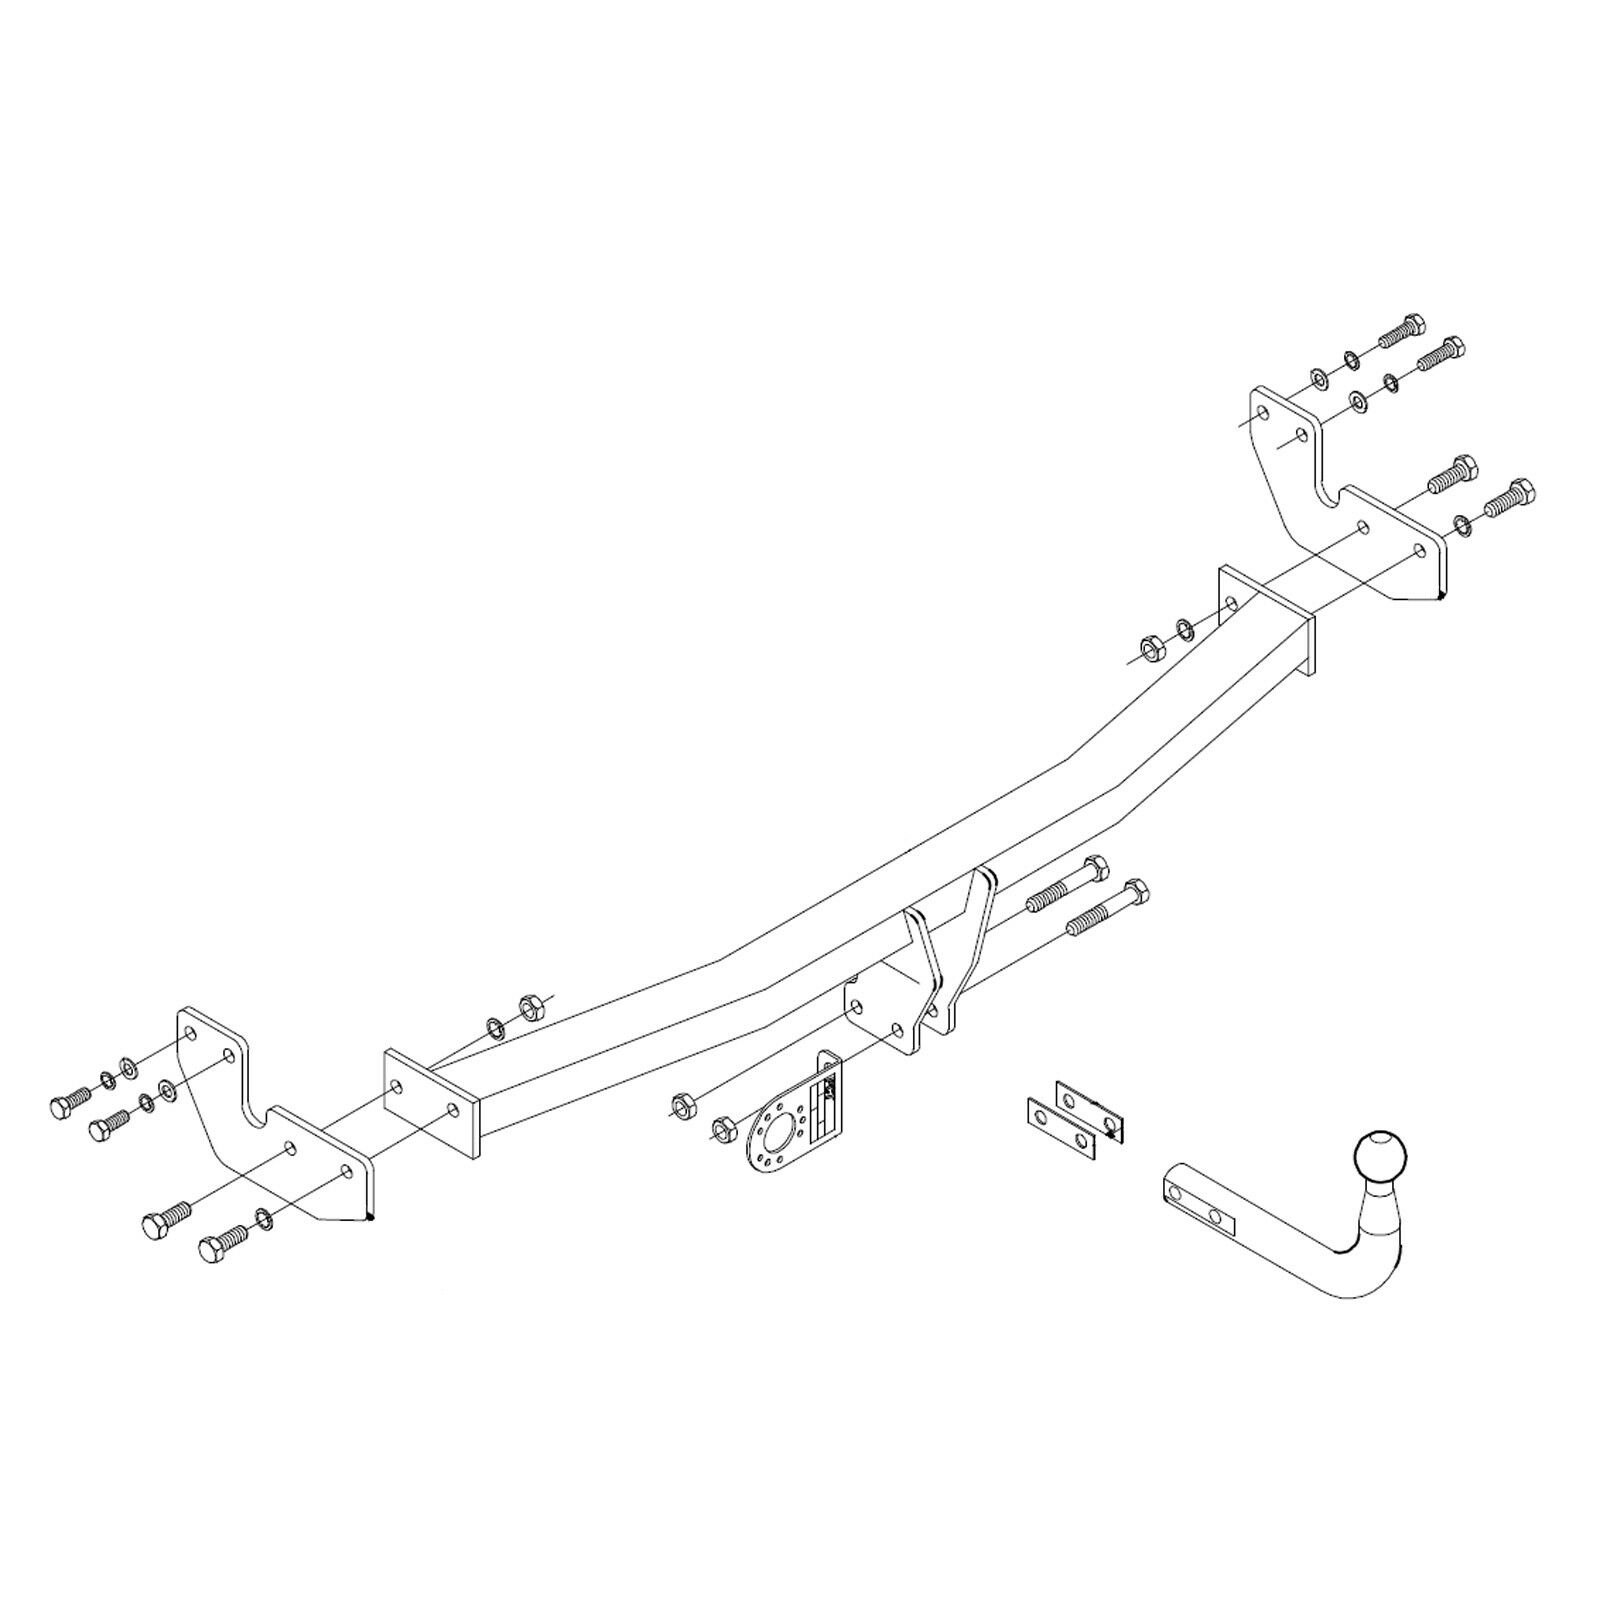 small resolution of details about towbar for citroen c3 hatchback 2010 2016 swan neck tow bar